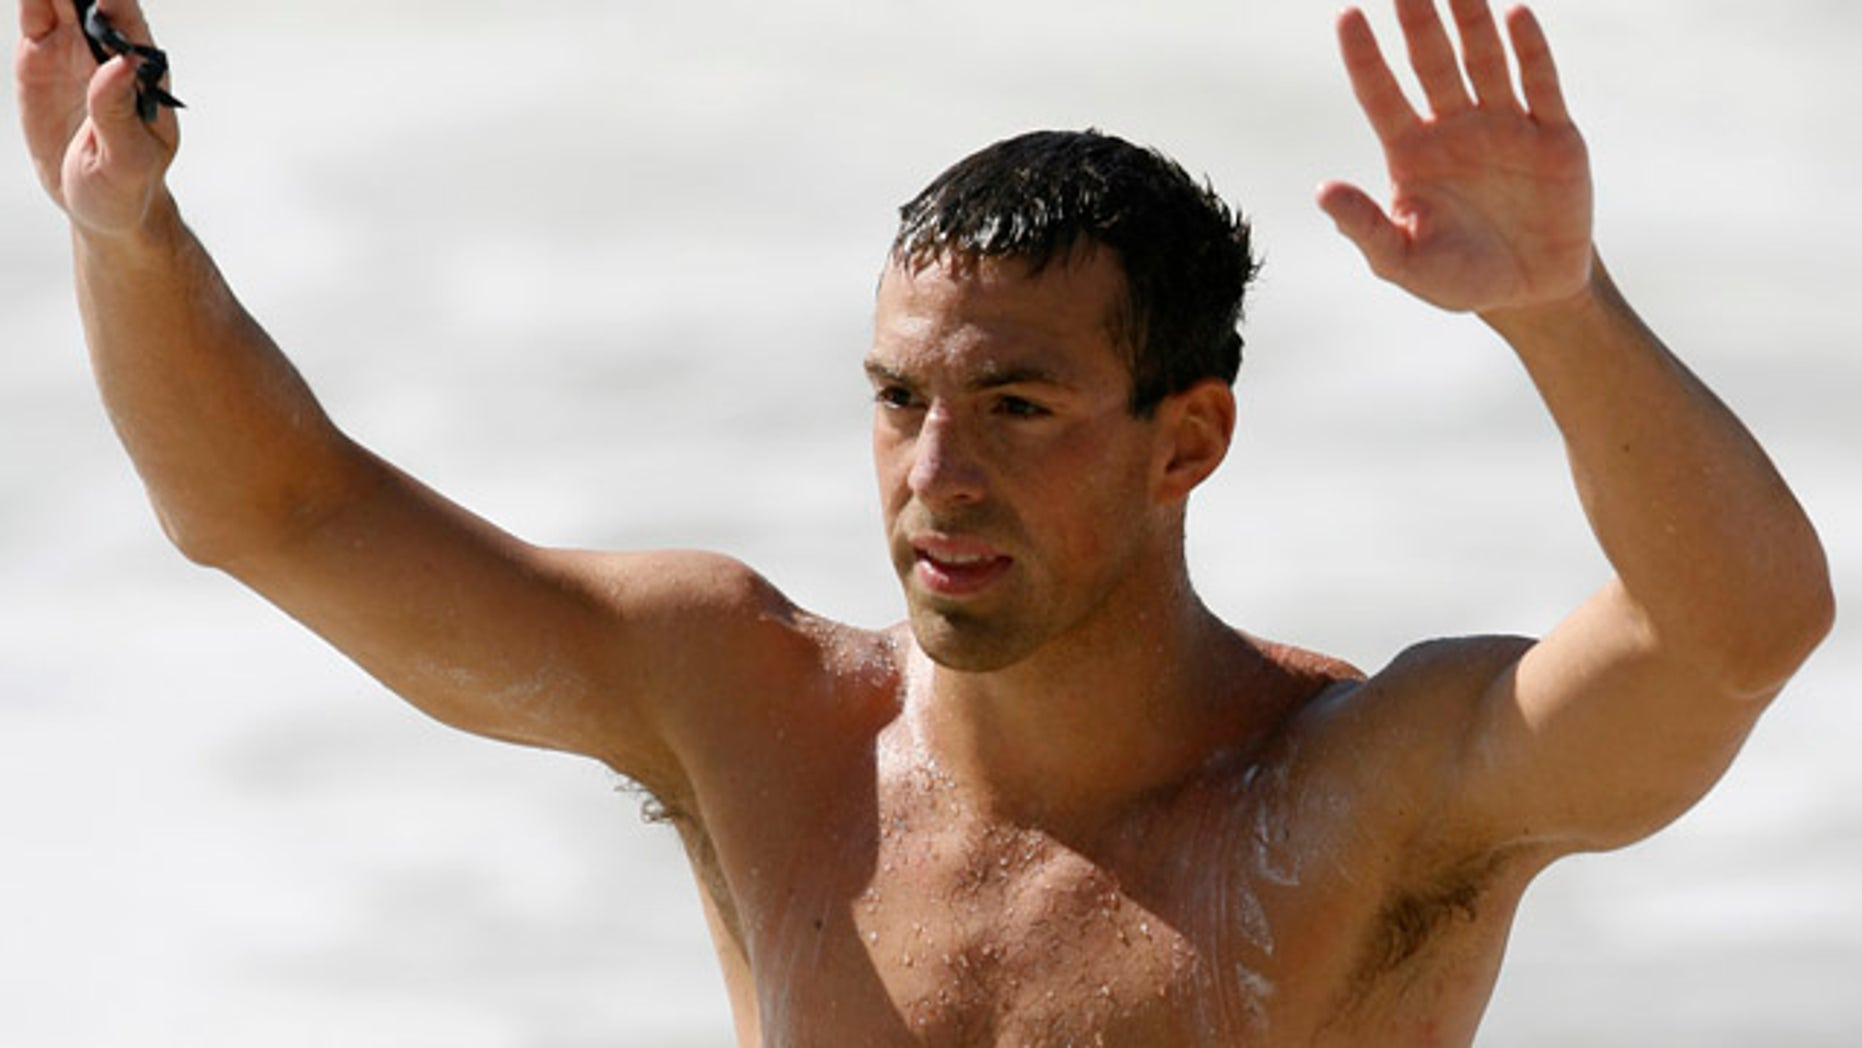 Fran Crippen, shown in a July 14, 2007 file photo, was competing in the FINA Open Water 10-kilometer World Cup in Fujairah, south of Dubai, but failed to finish and was found in the water two hours later.